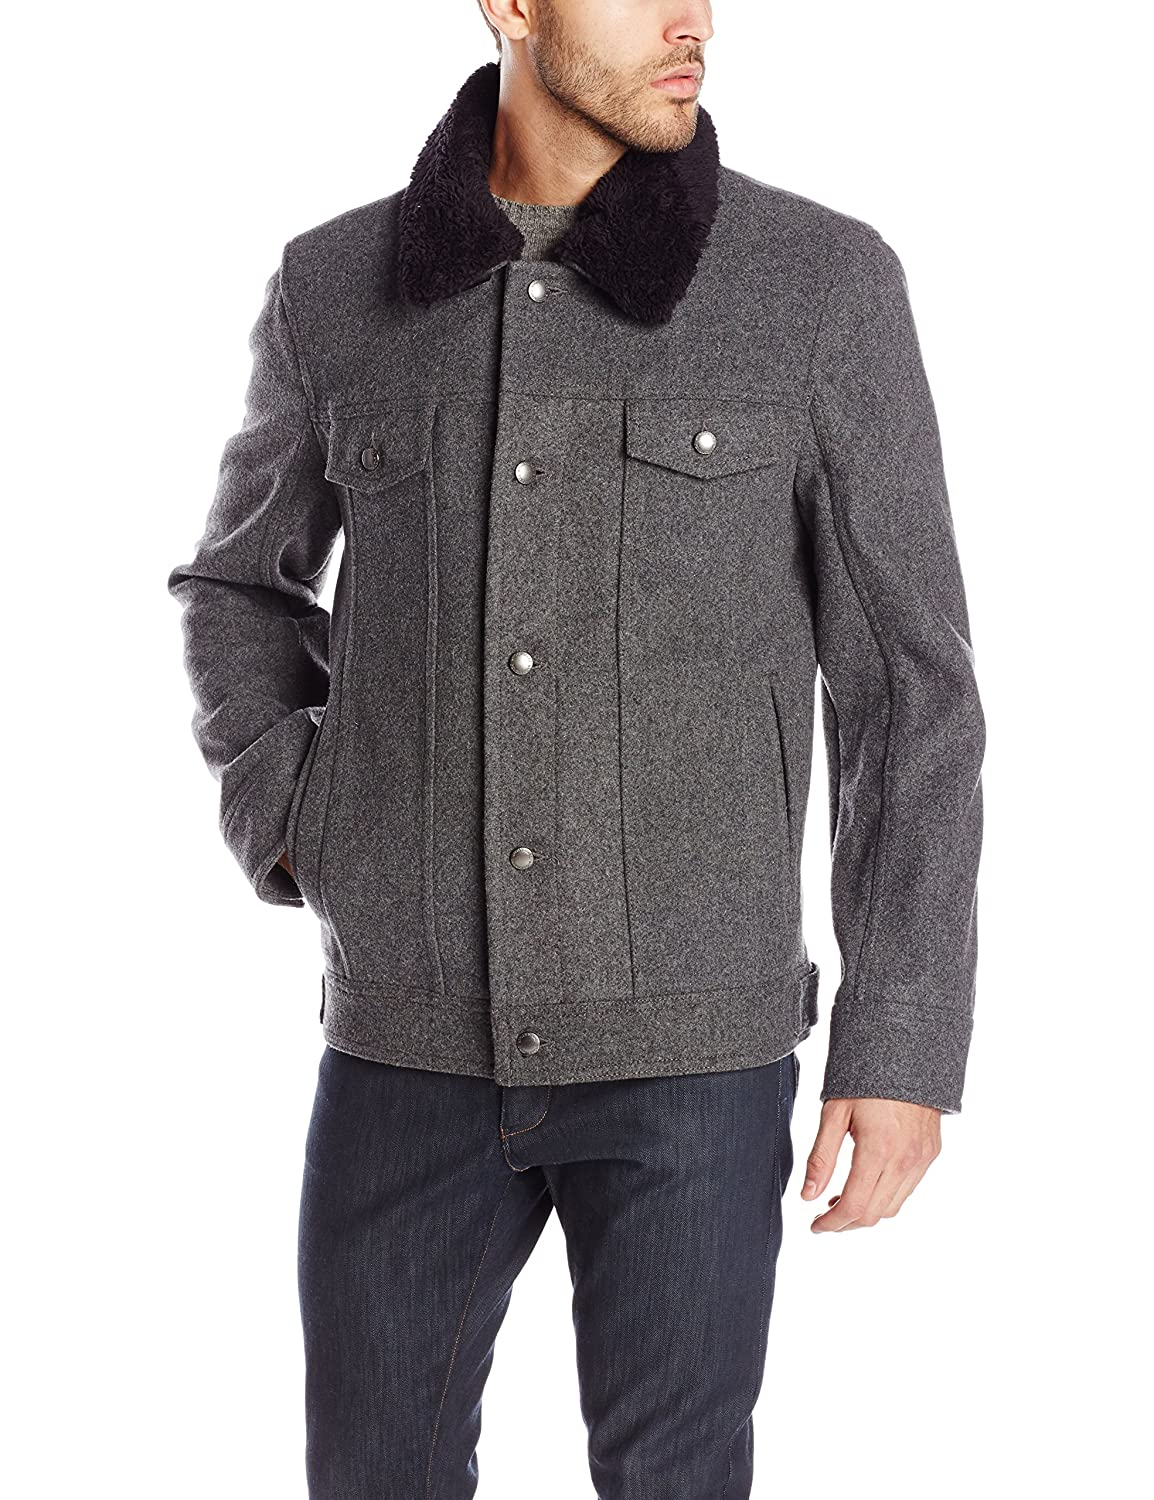 Men's Vintage Style Coats and Jackets Pendleton Heritage Mens Sante Fe $233.25 AT vintagedancer.com